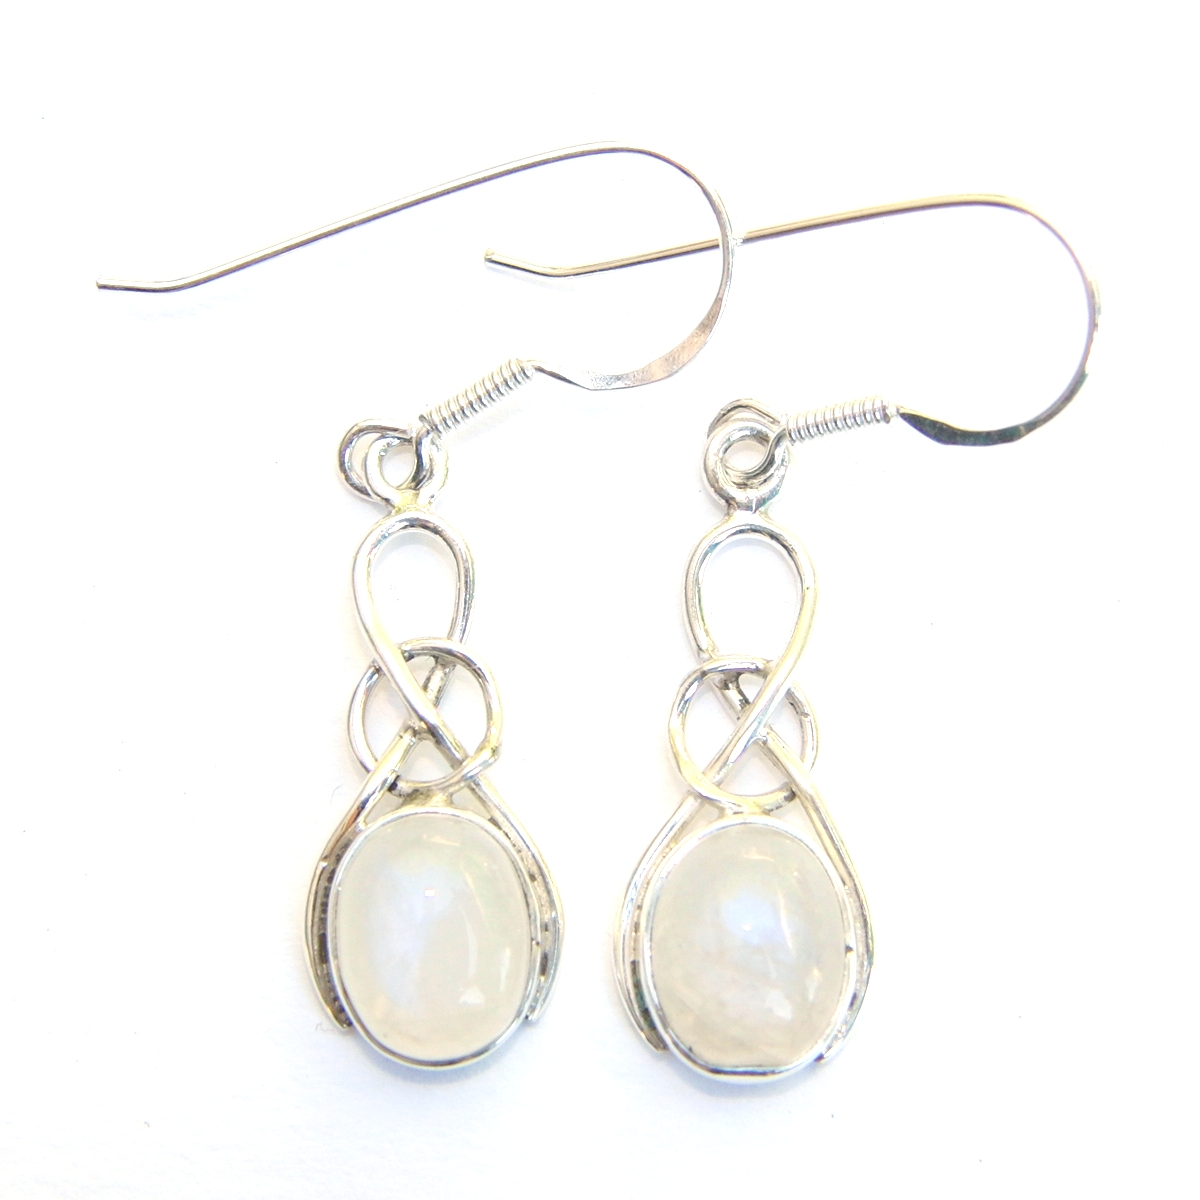 Moonstone Oval Knot Earrings